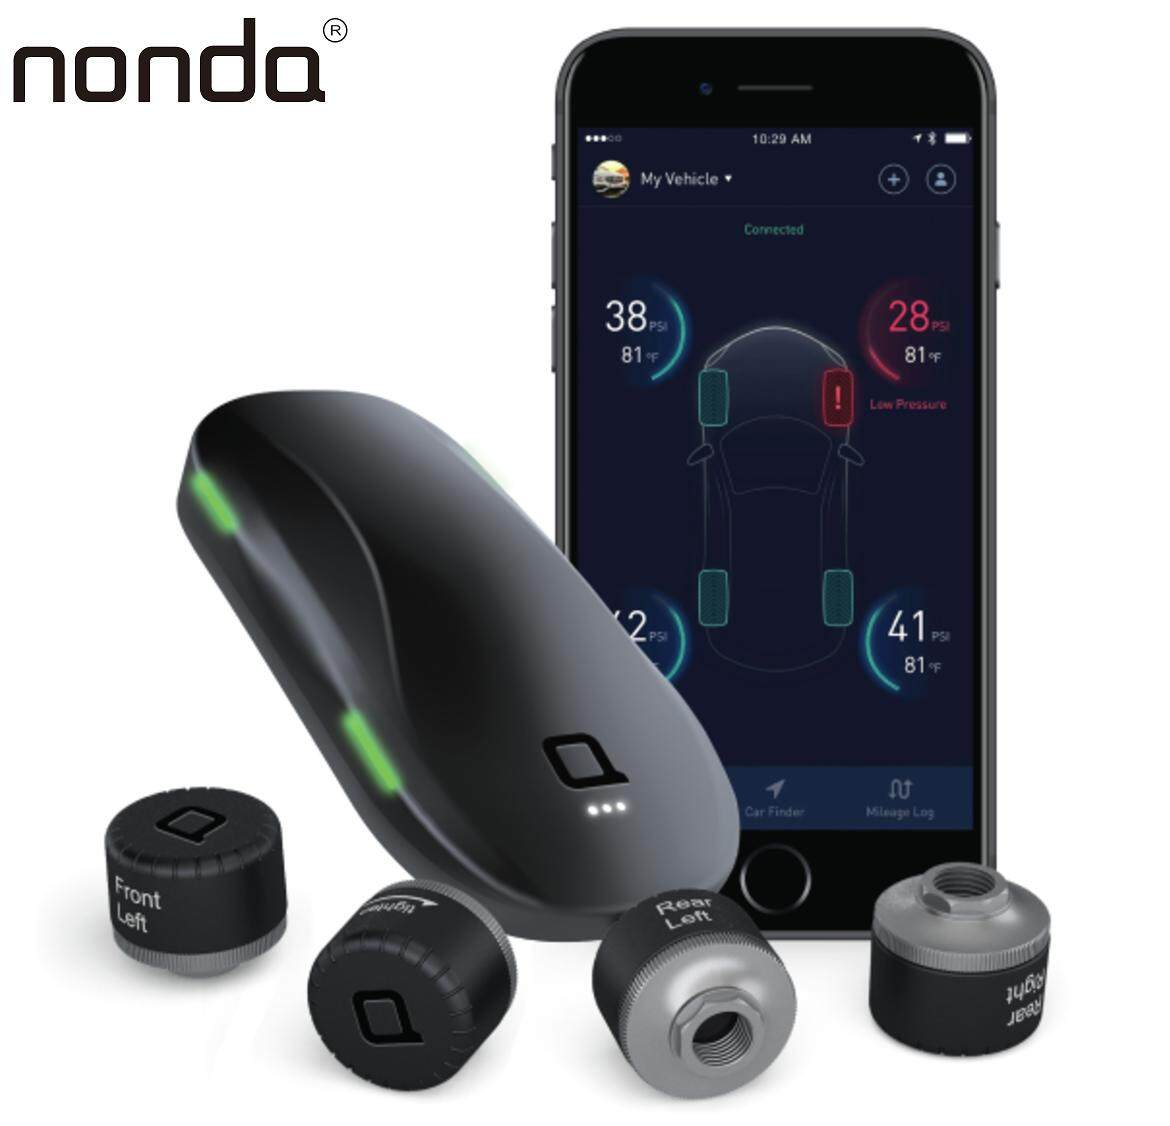 Nonda Zus Smart Tire Safety Monitor By Axtro.